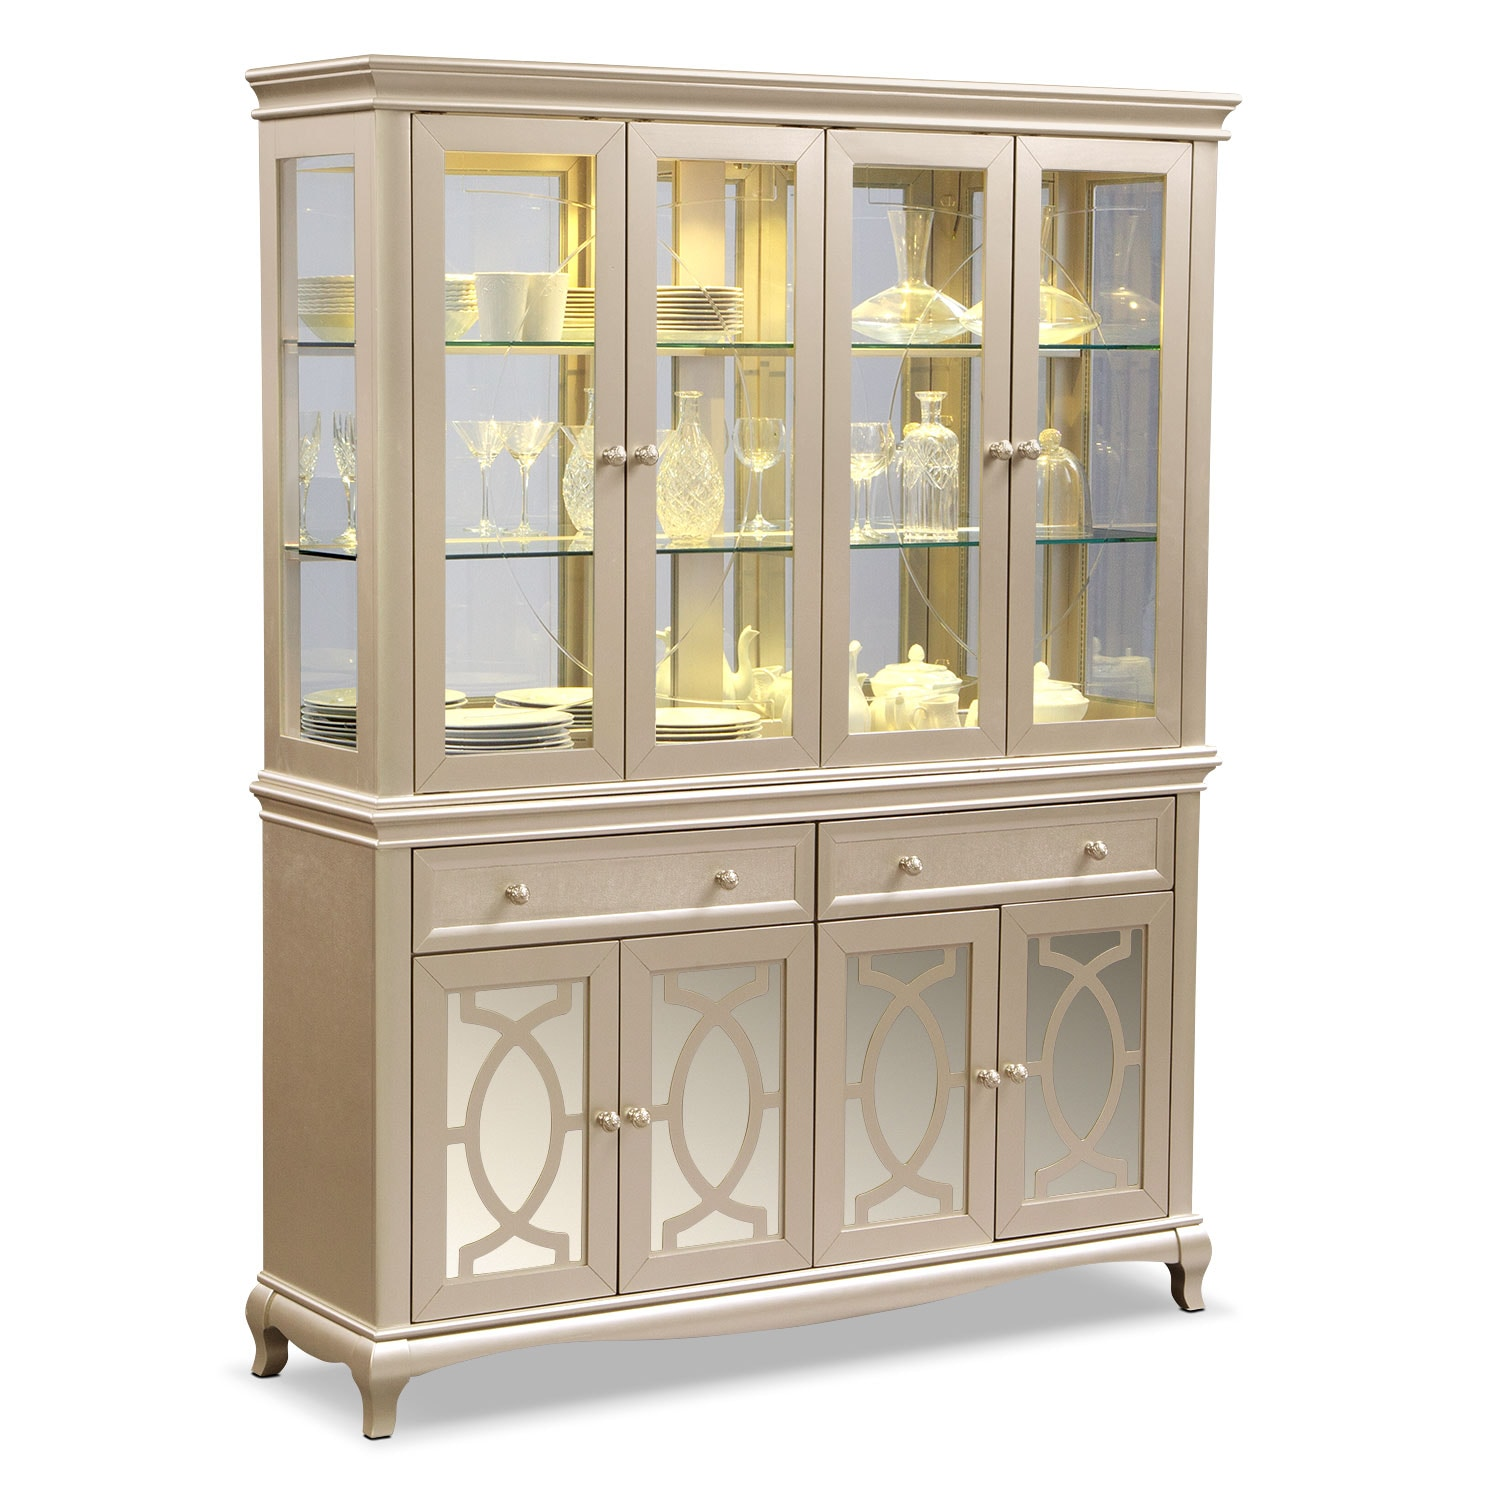 dining room storage cabinets american signature furniture Dining Room Built Ins dining room storage cabinets ideas